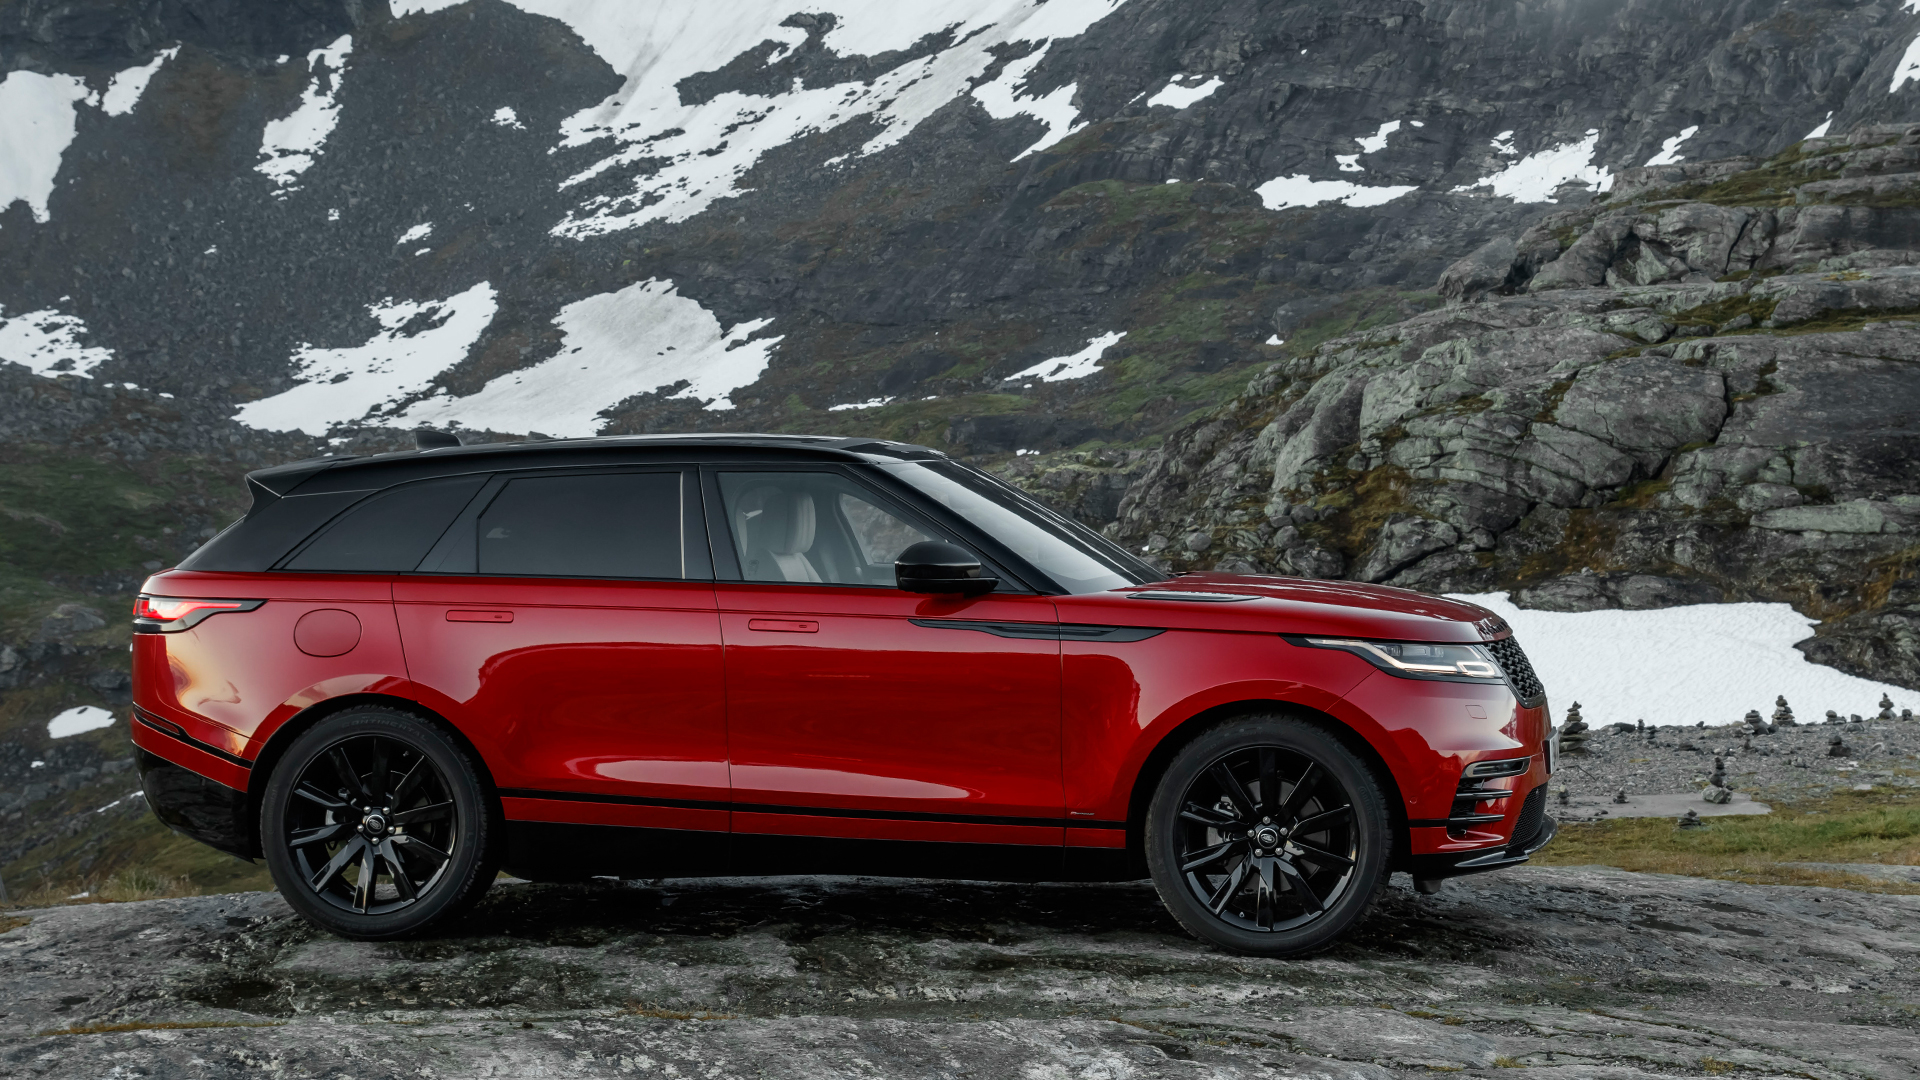 land rover range rover velar 2017 2 0 petrol hse price mileage reviews specification. Black Bedroom Furniture Sets. Home Design Ideas